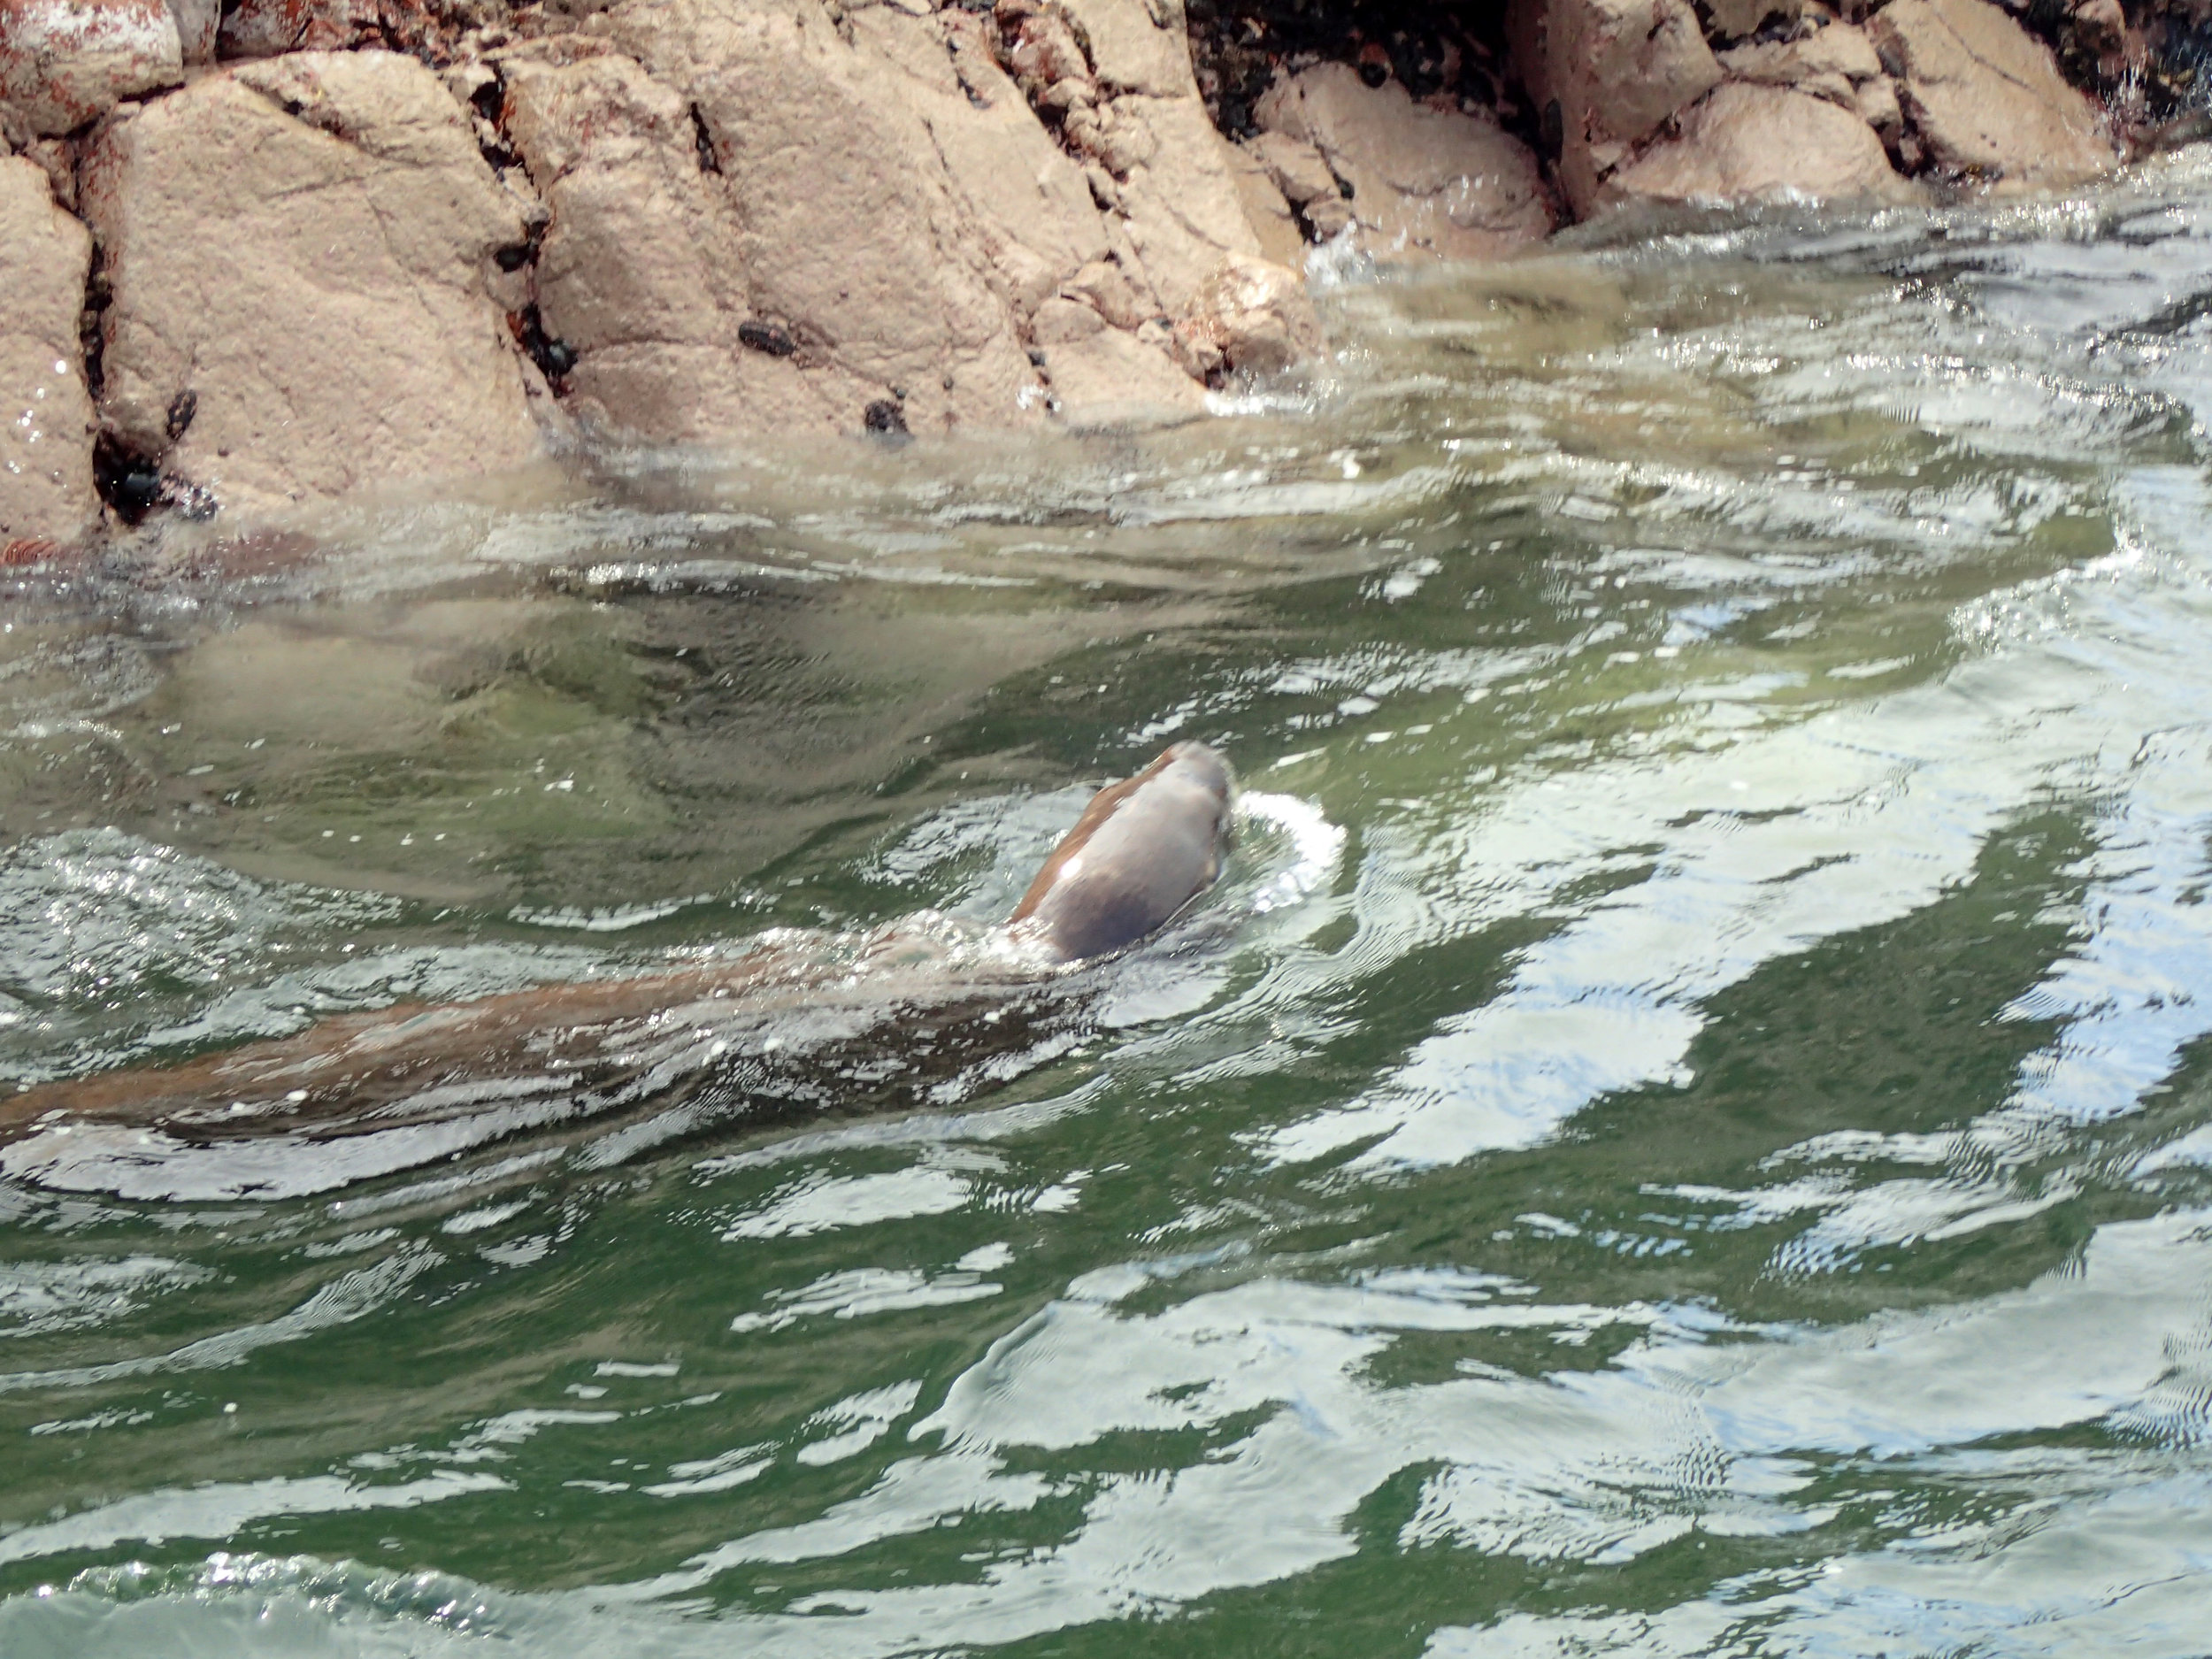 swimming sea lion from behind.jpg